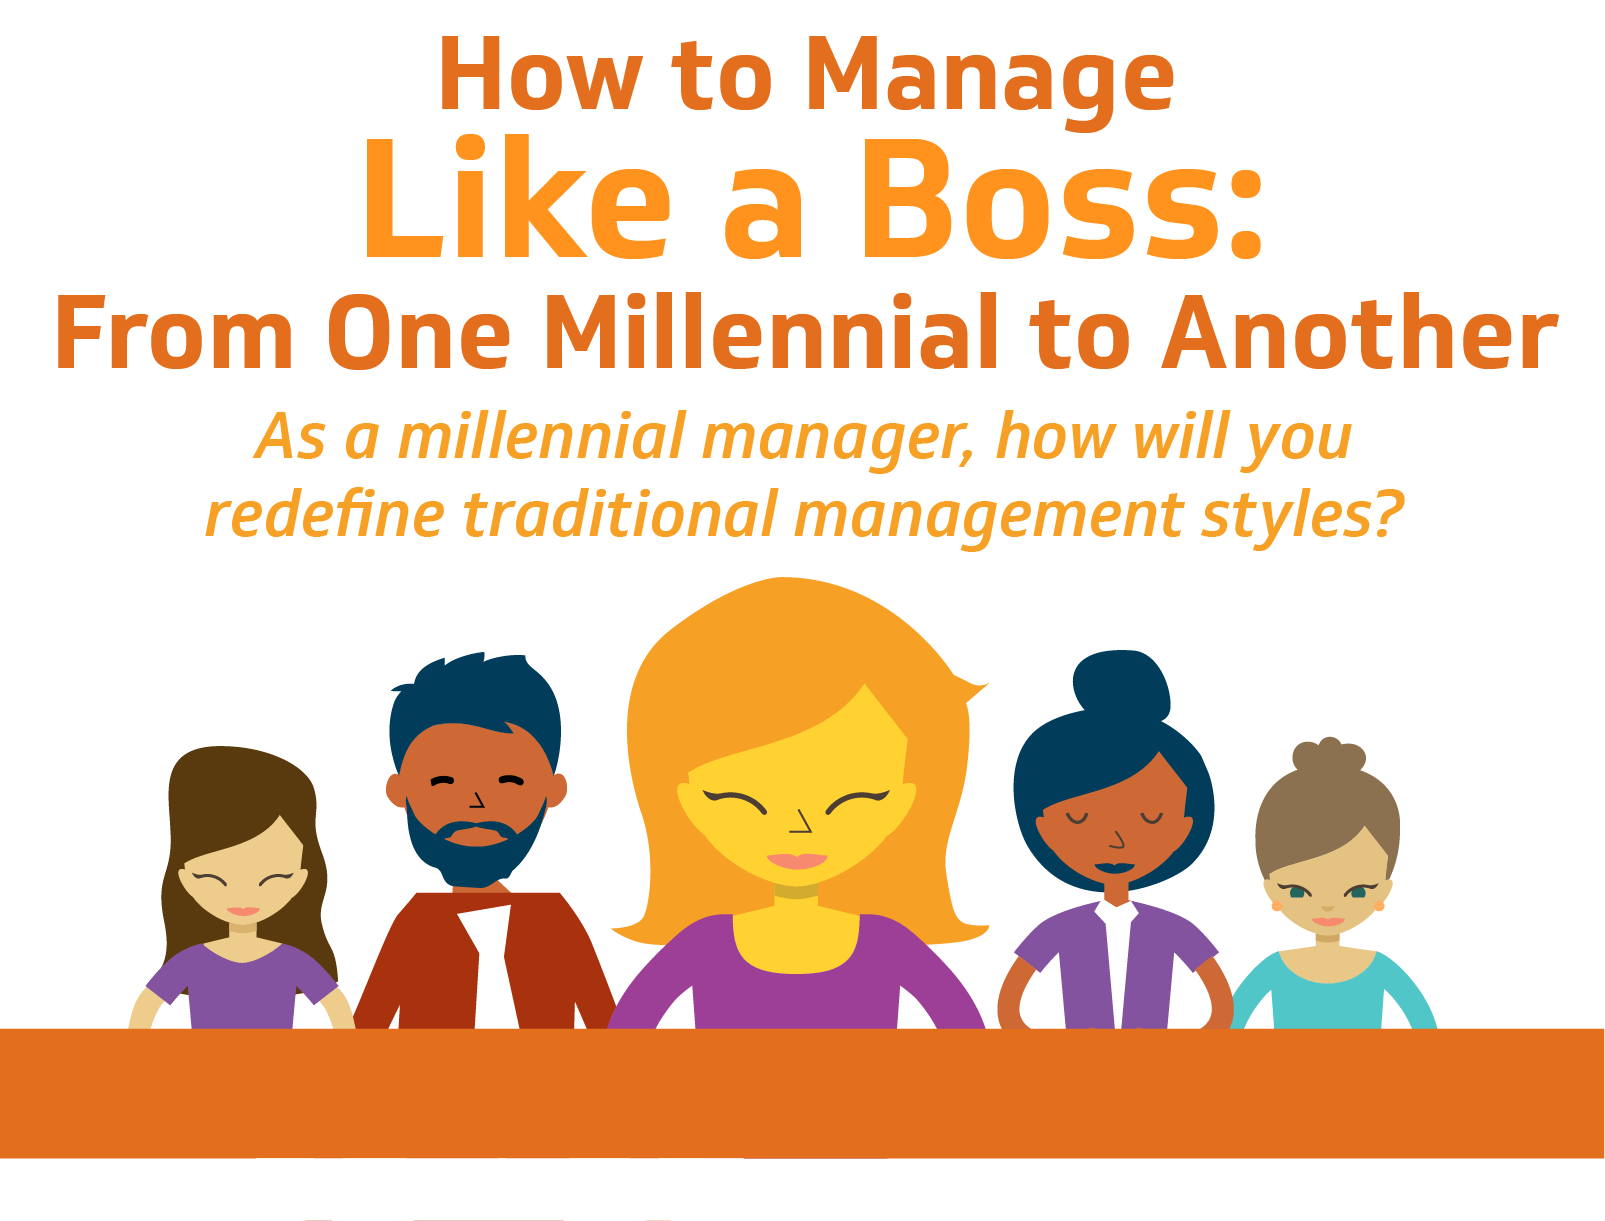 How to Manage Like a Boss